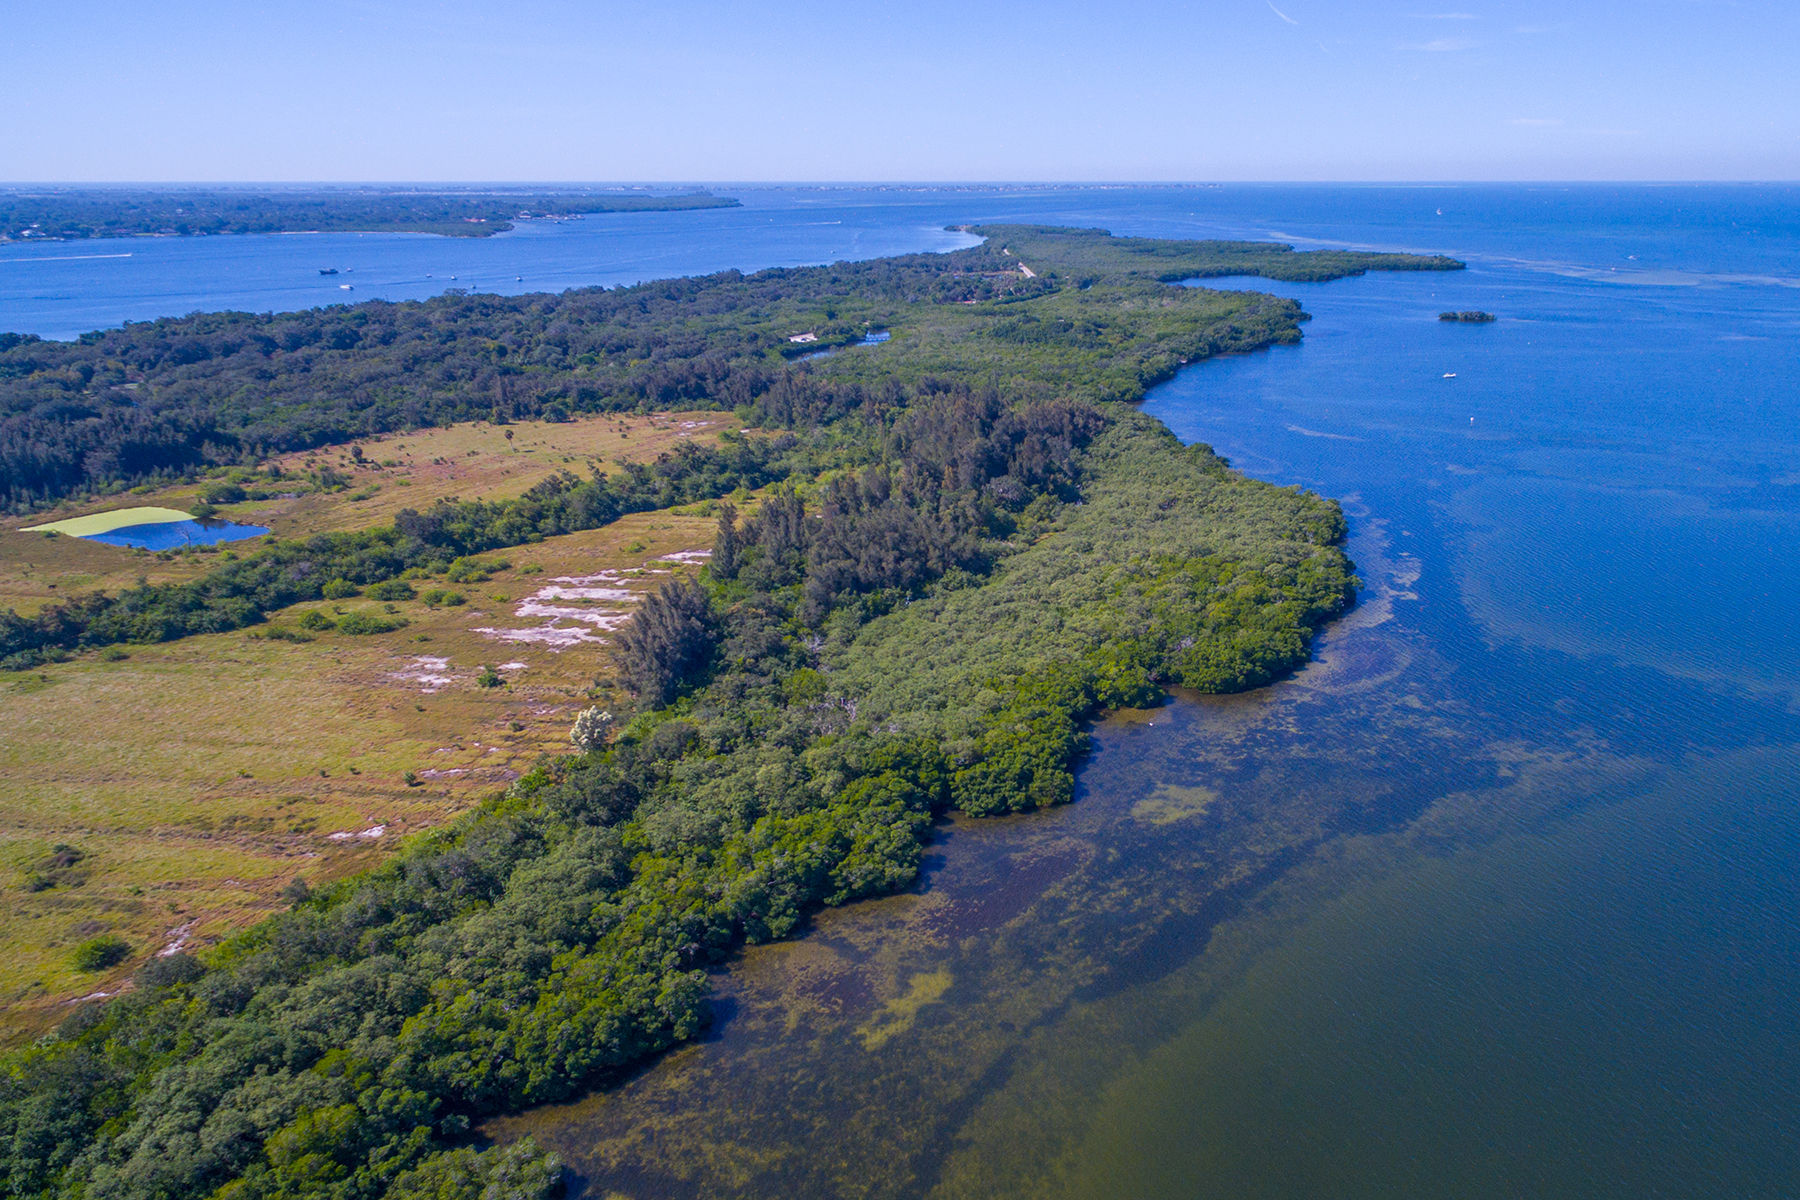 Land for Sale at SNEAD ISLAND 5200 W 17th St 0, Palmetto, Florida 34221 United States